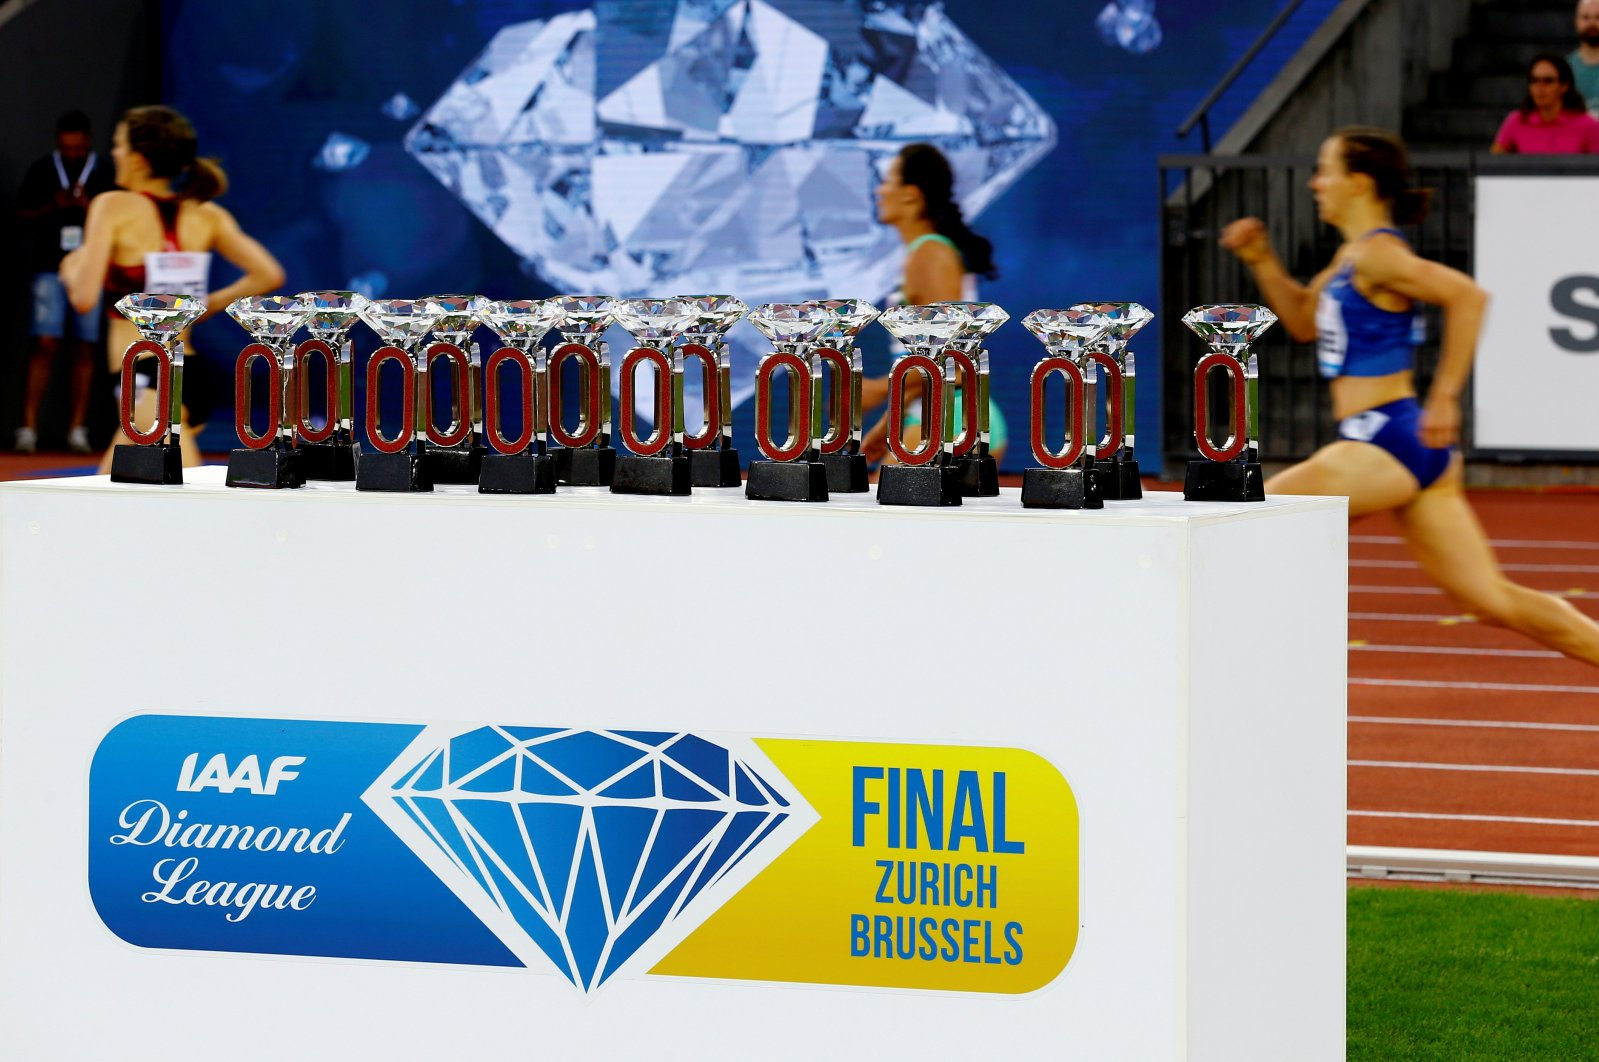 A general view of awards of the Diamond League at an event in Zurich, Switzerland, Aug. 29, 2019. (Reuters Photo)